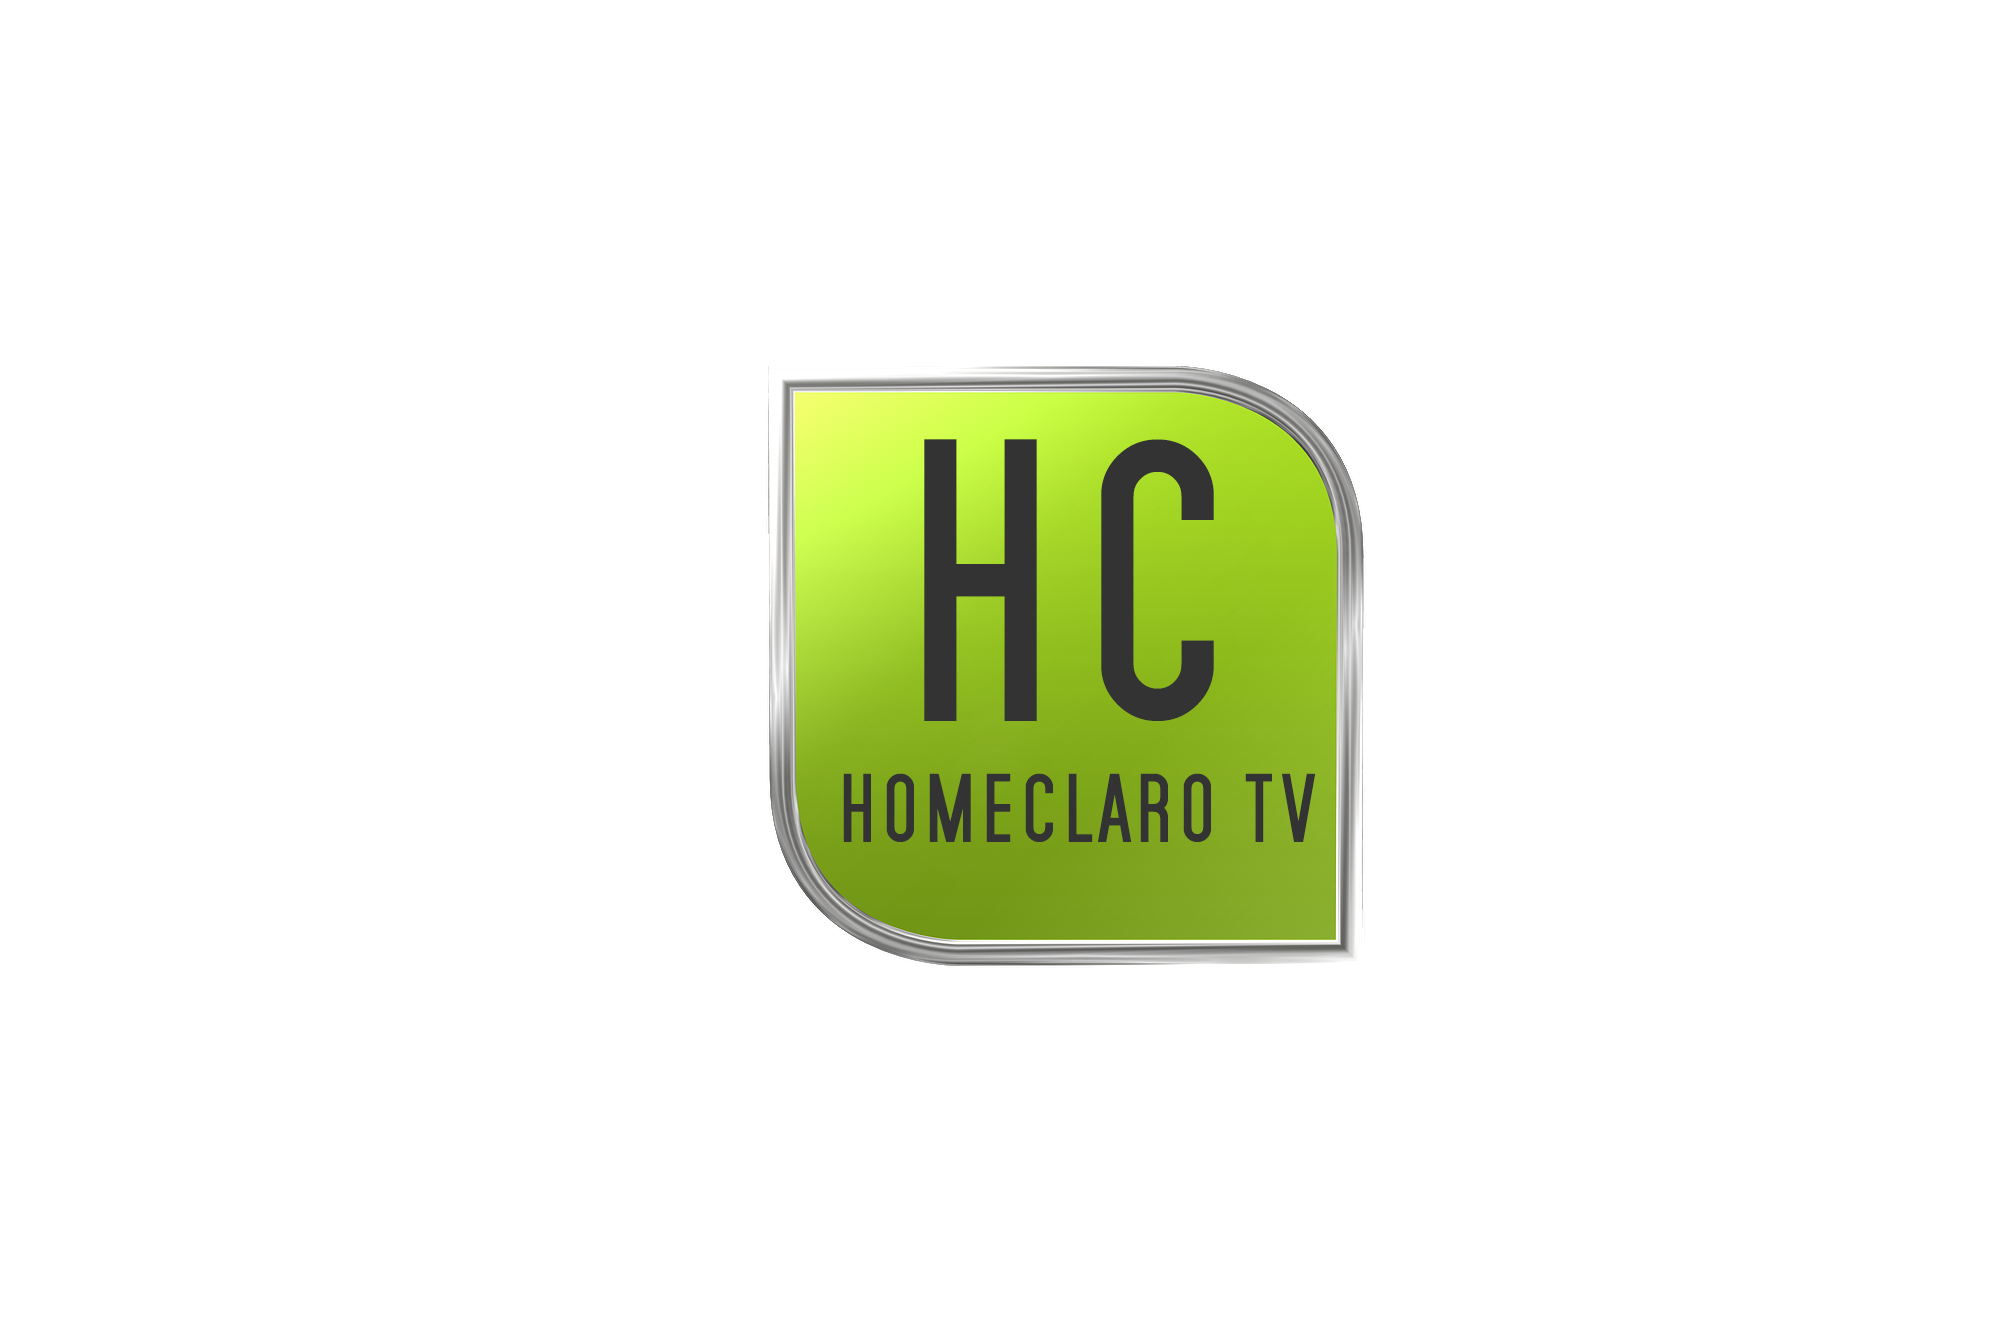 Homeclaro TV